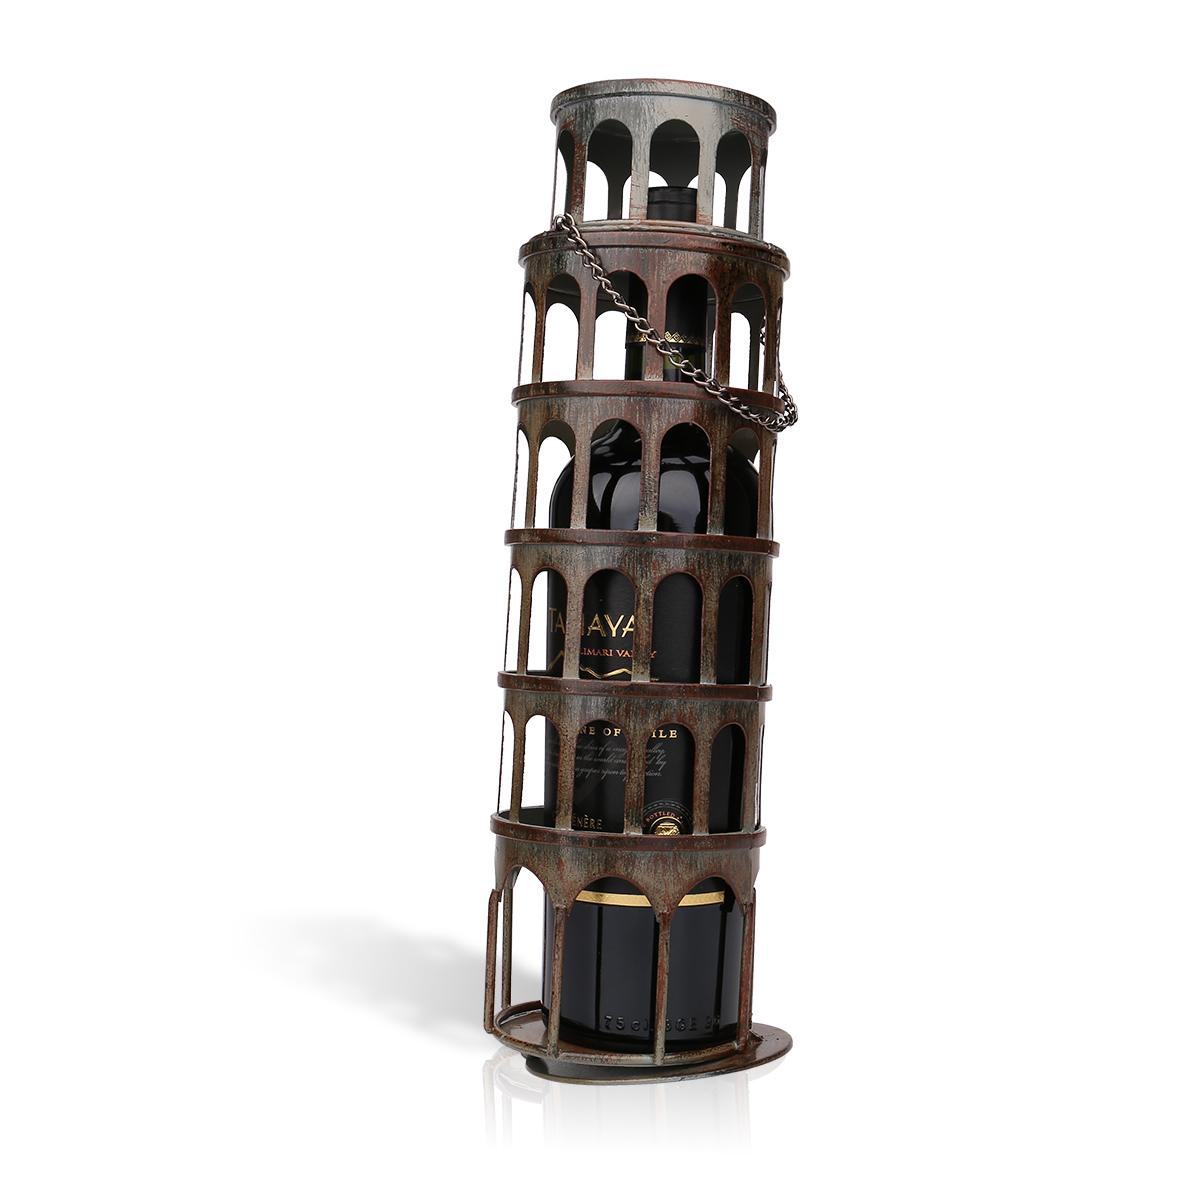 Vintage Leaning Tower Bottle Holder